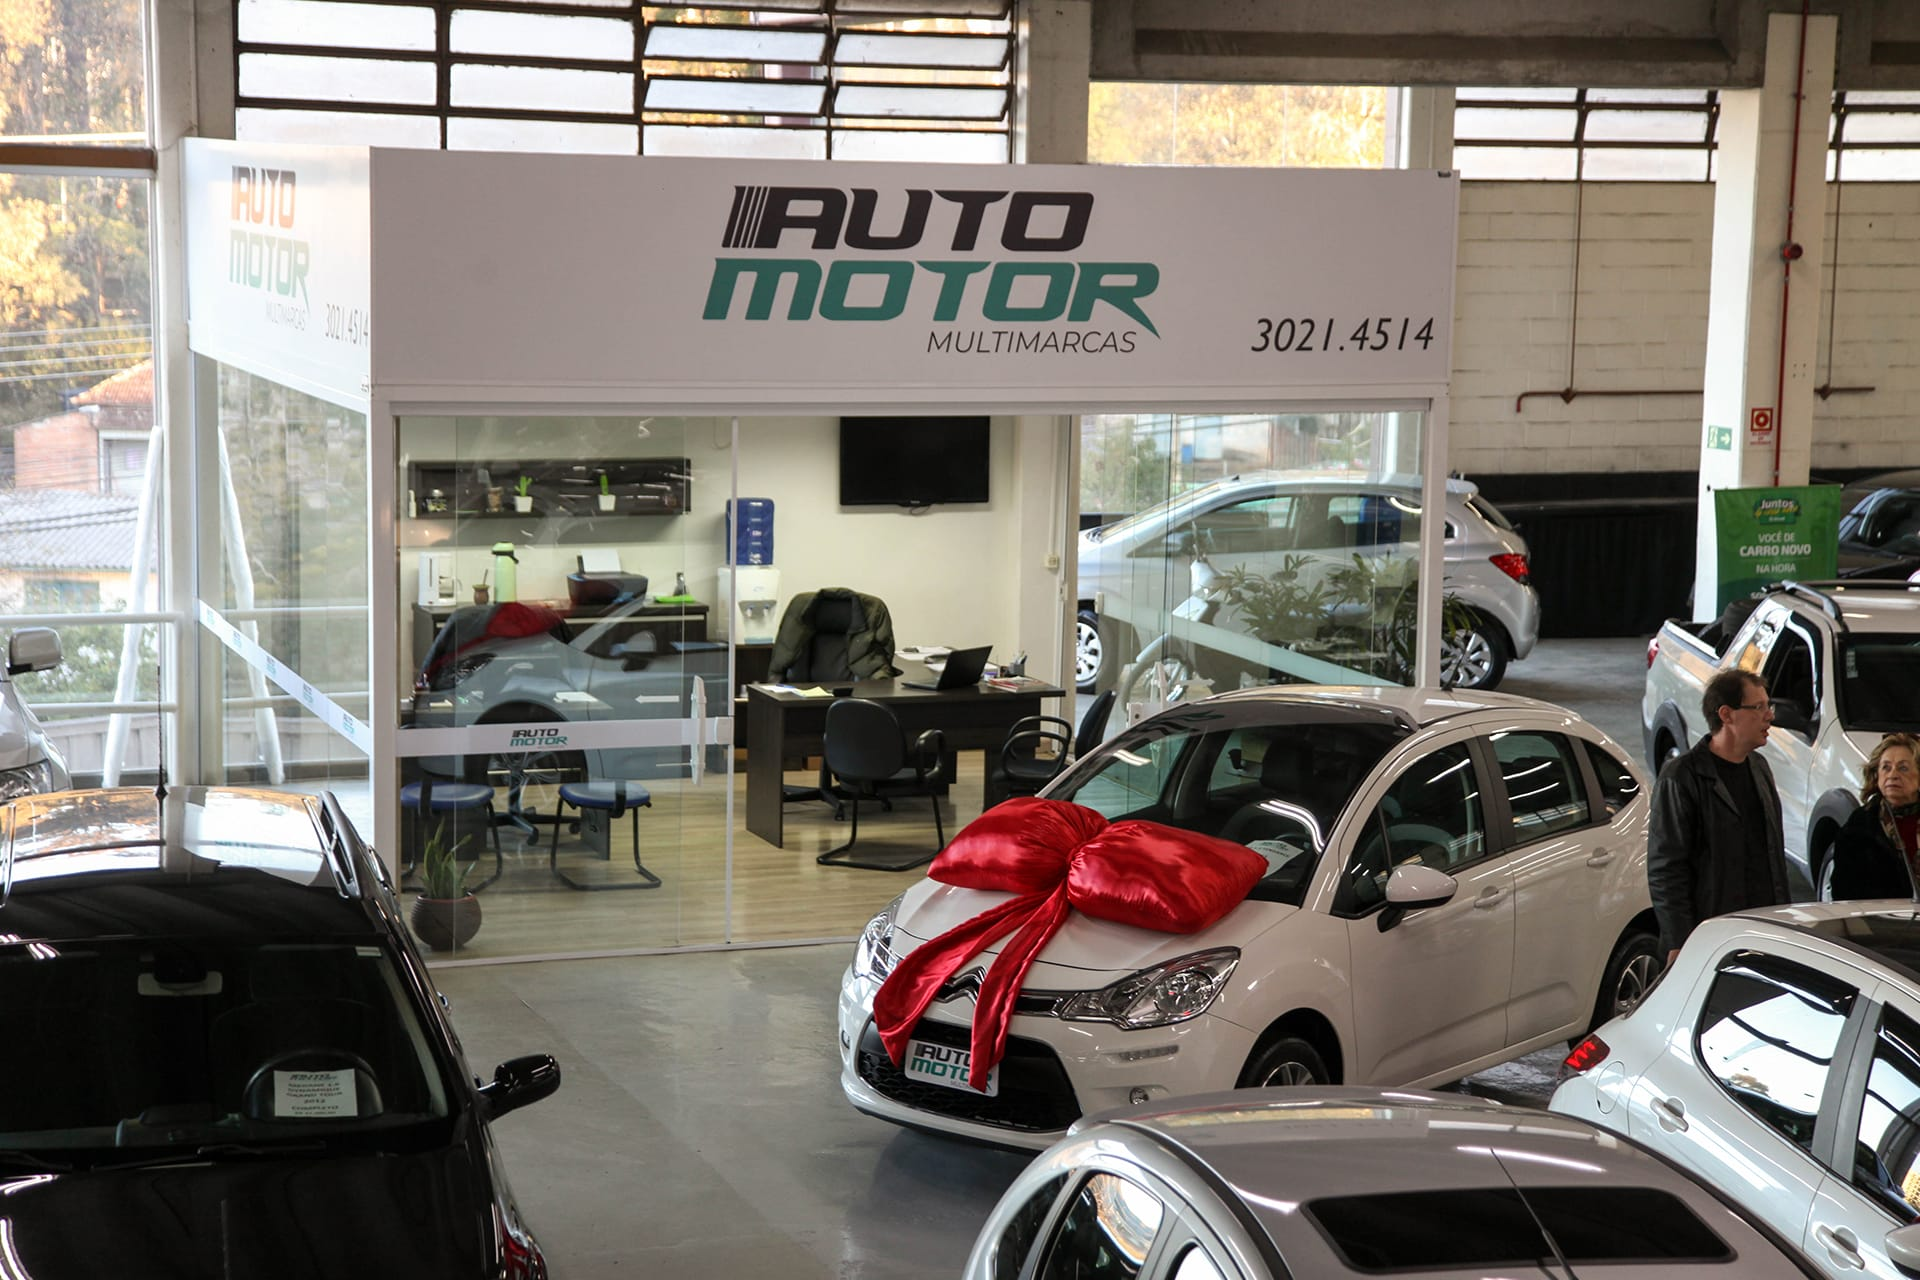 AutoMotor Multimarcas